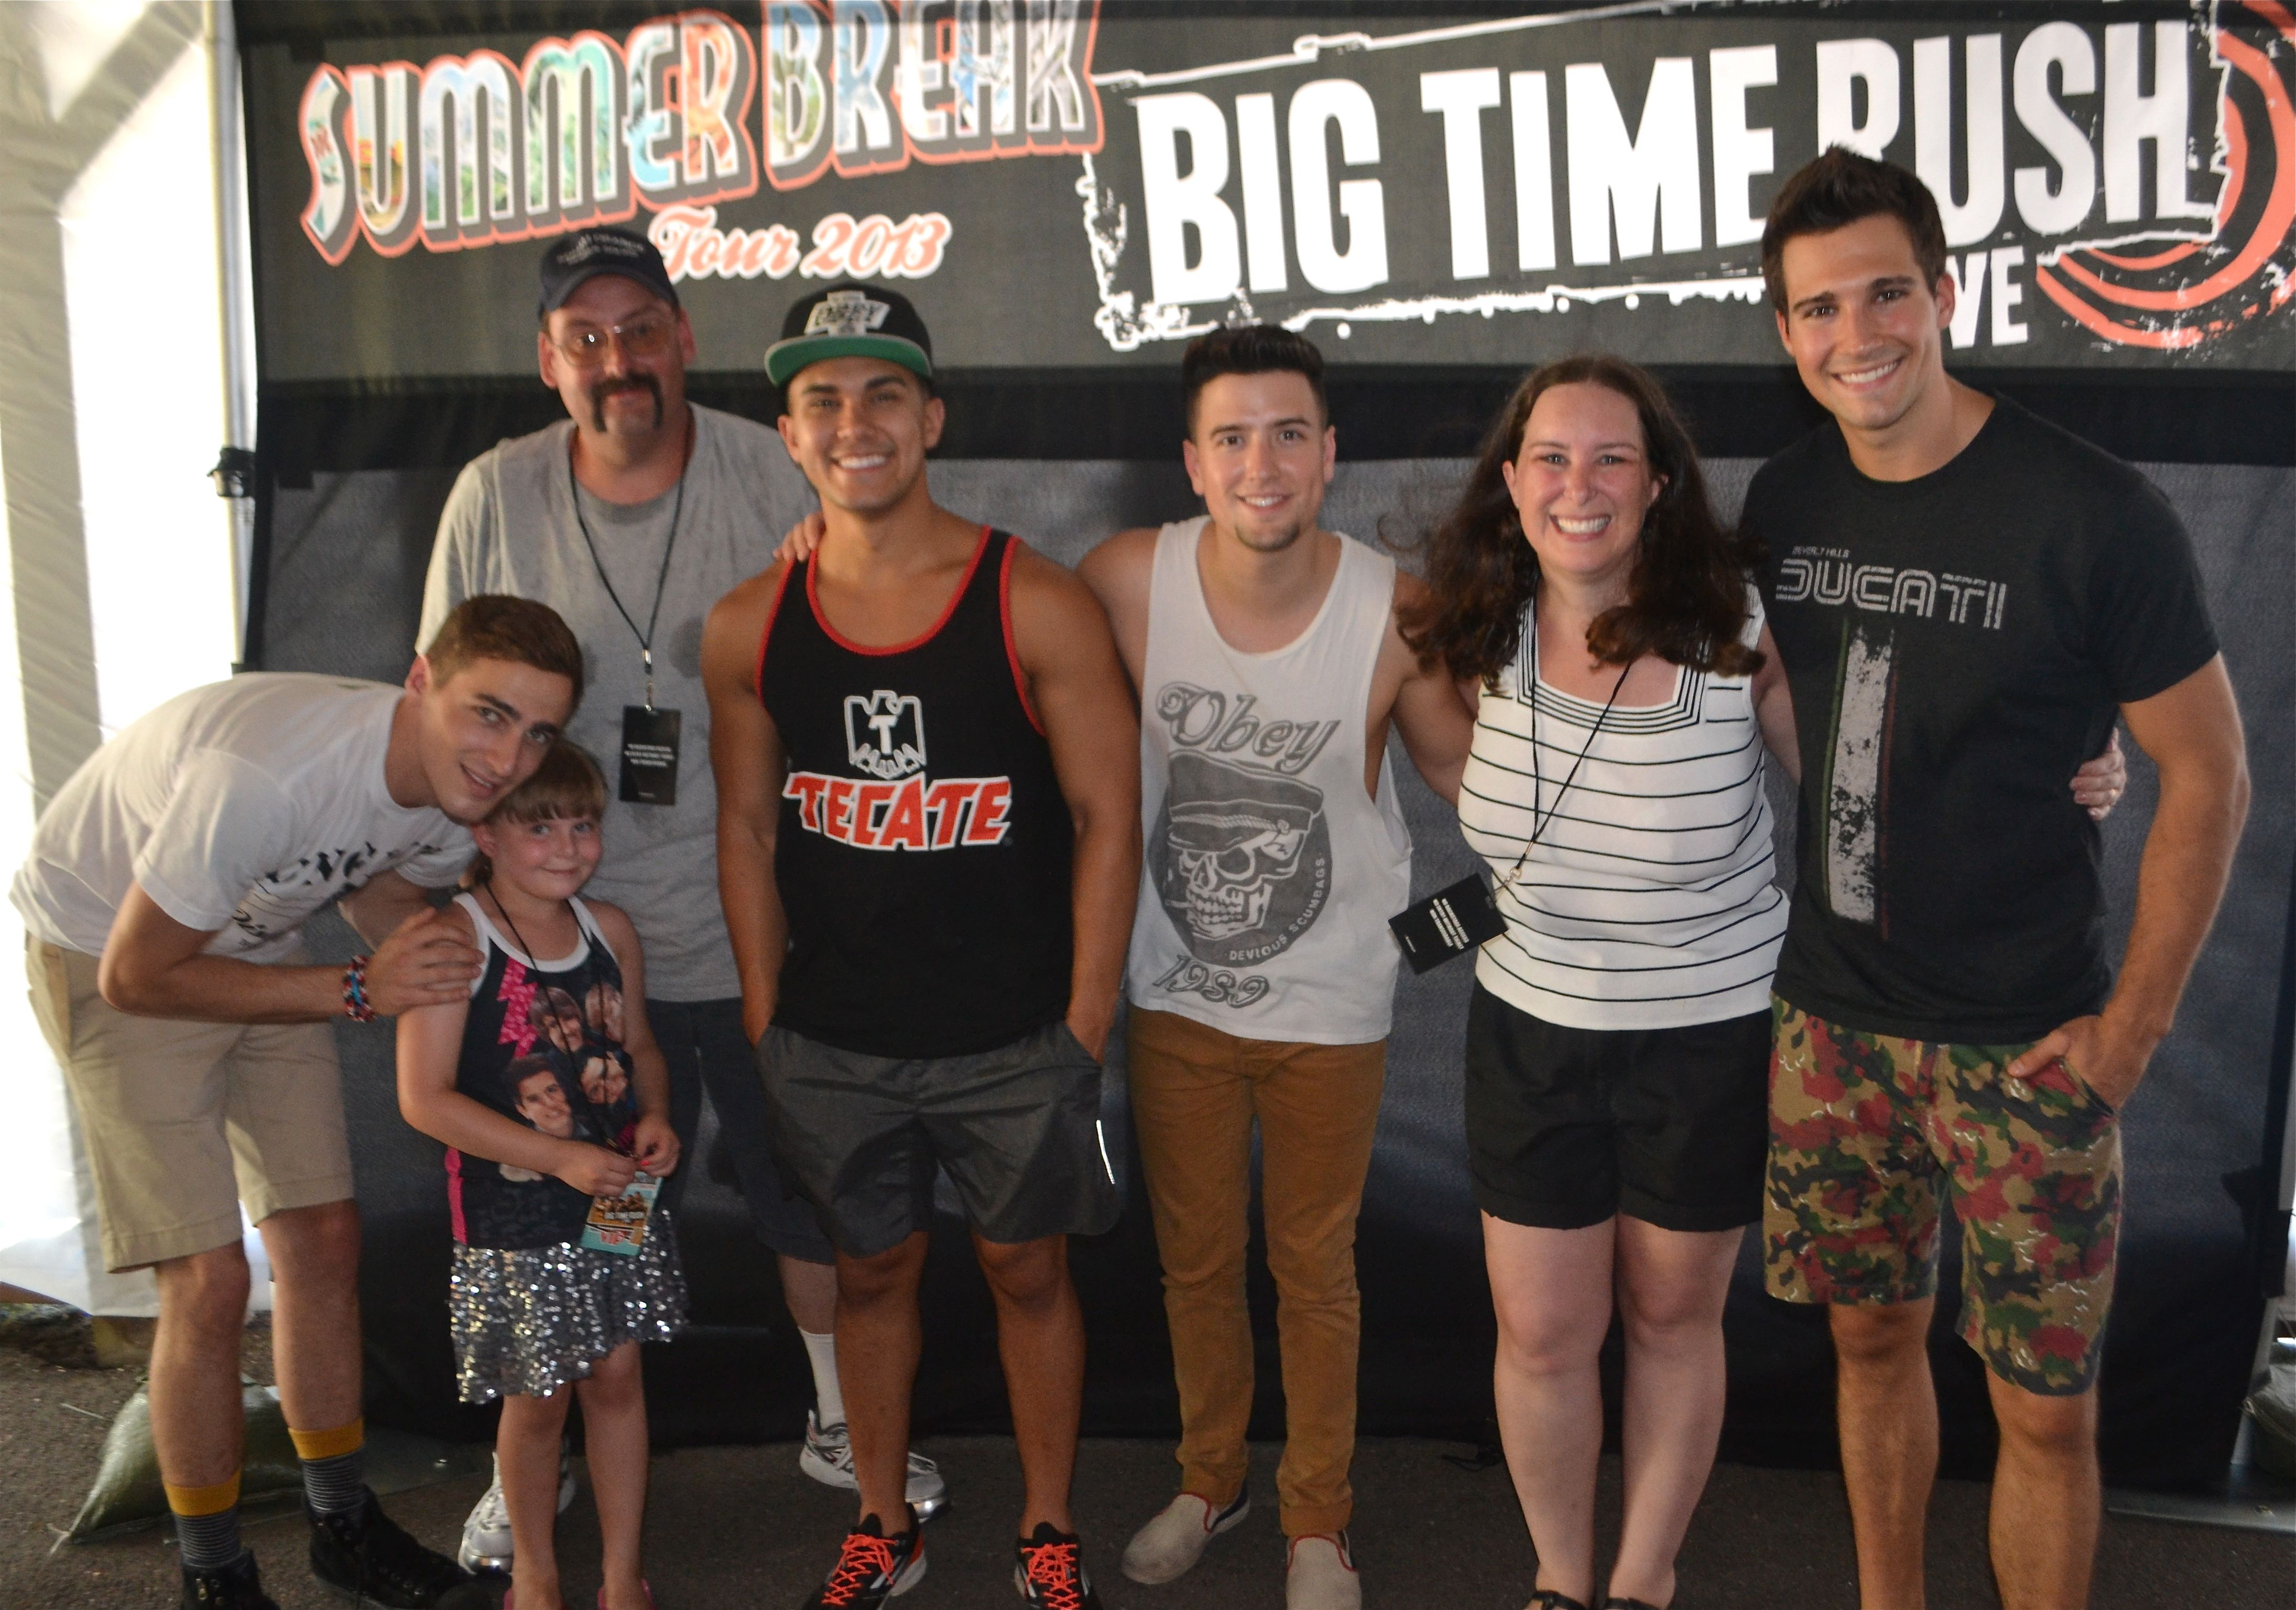 Our Vip Meet And Greet Big Time Rush Summer Break Tour Pittsburgh